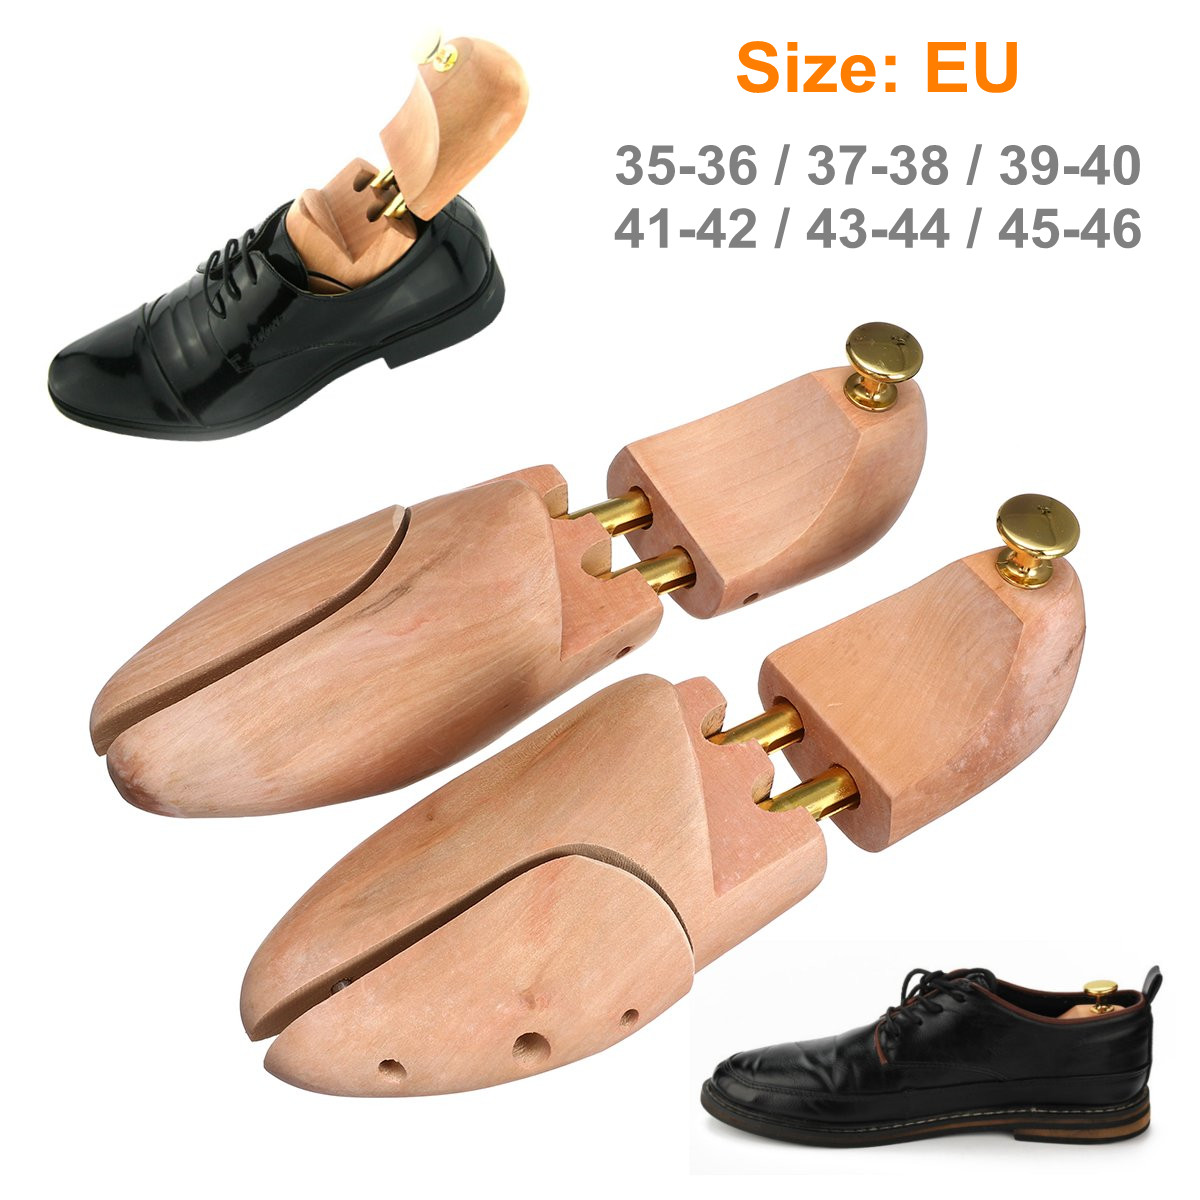 1 Pair High Quality Adjustable Wood Shoe Trees Wooden Shoes Tree Stretcher Shaper Keeper Anti-wrinkle EU 35-46/US 5-12/UK 3-11.5